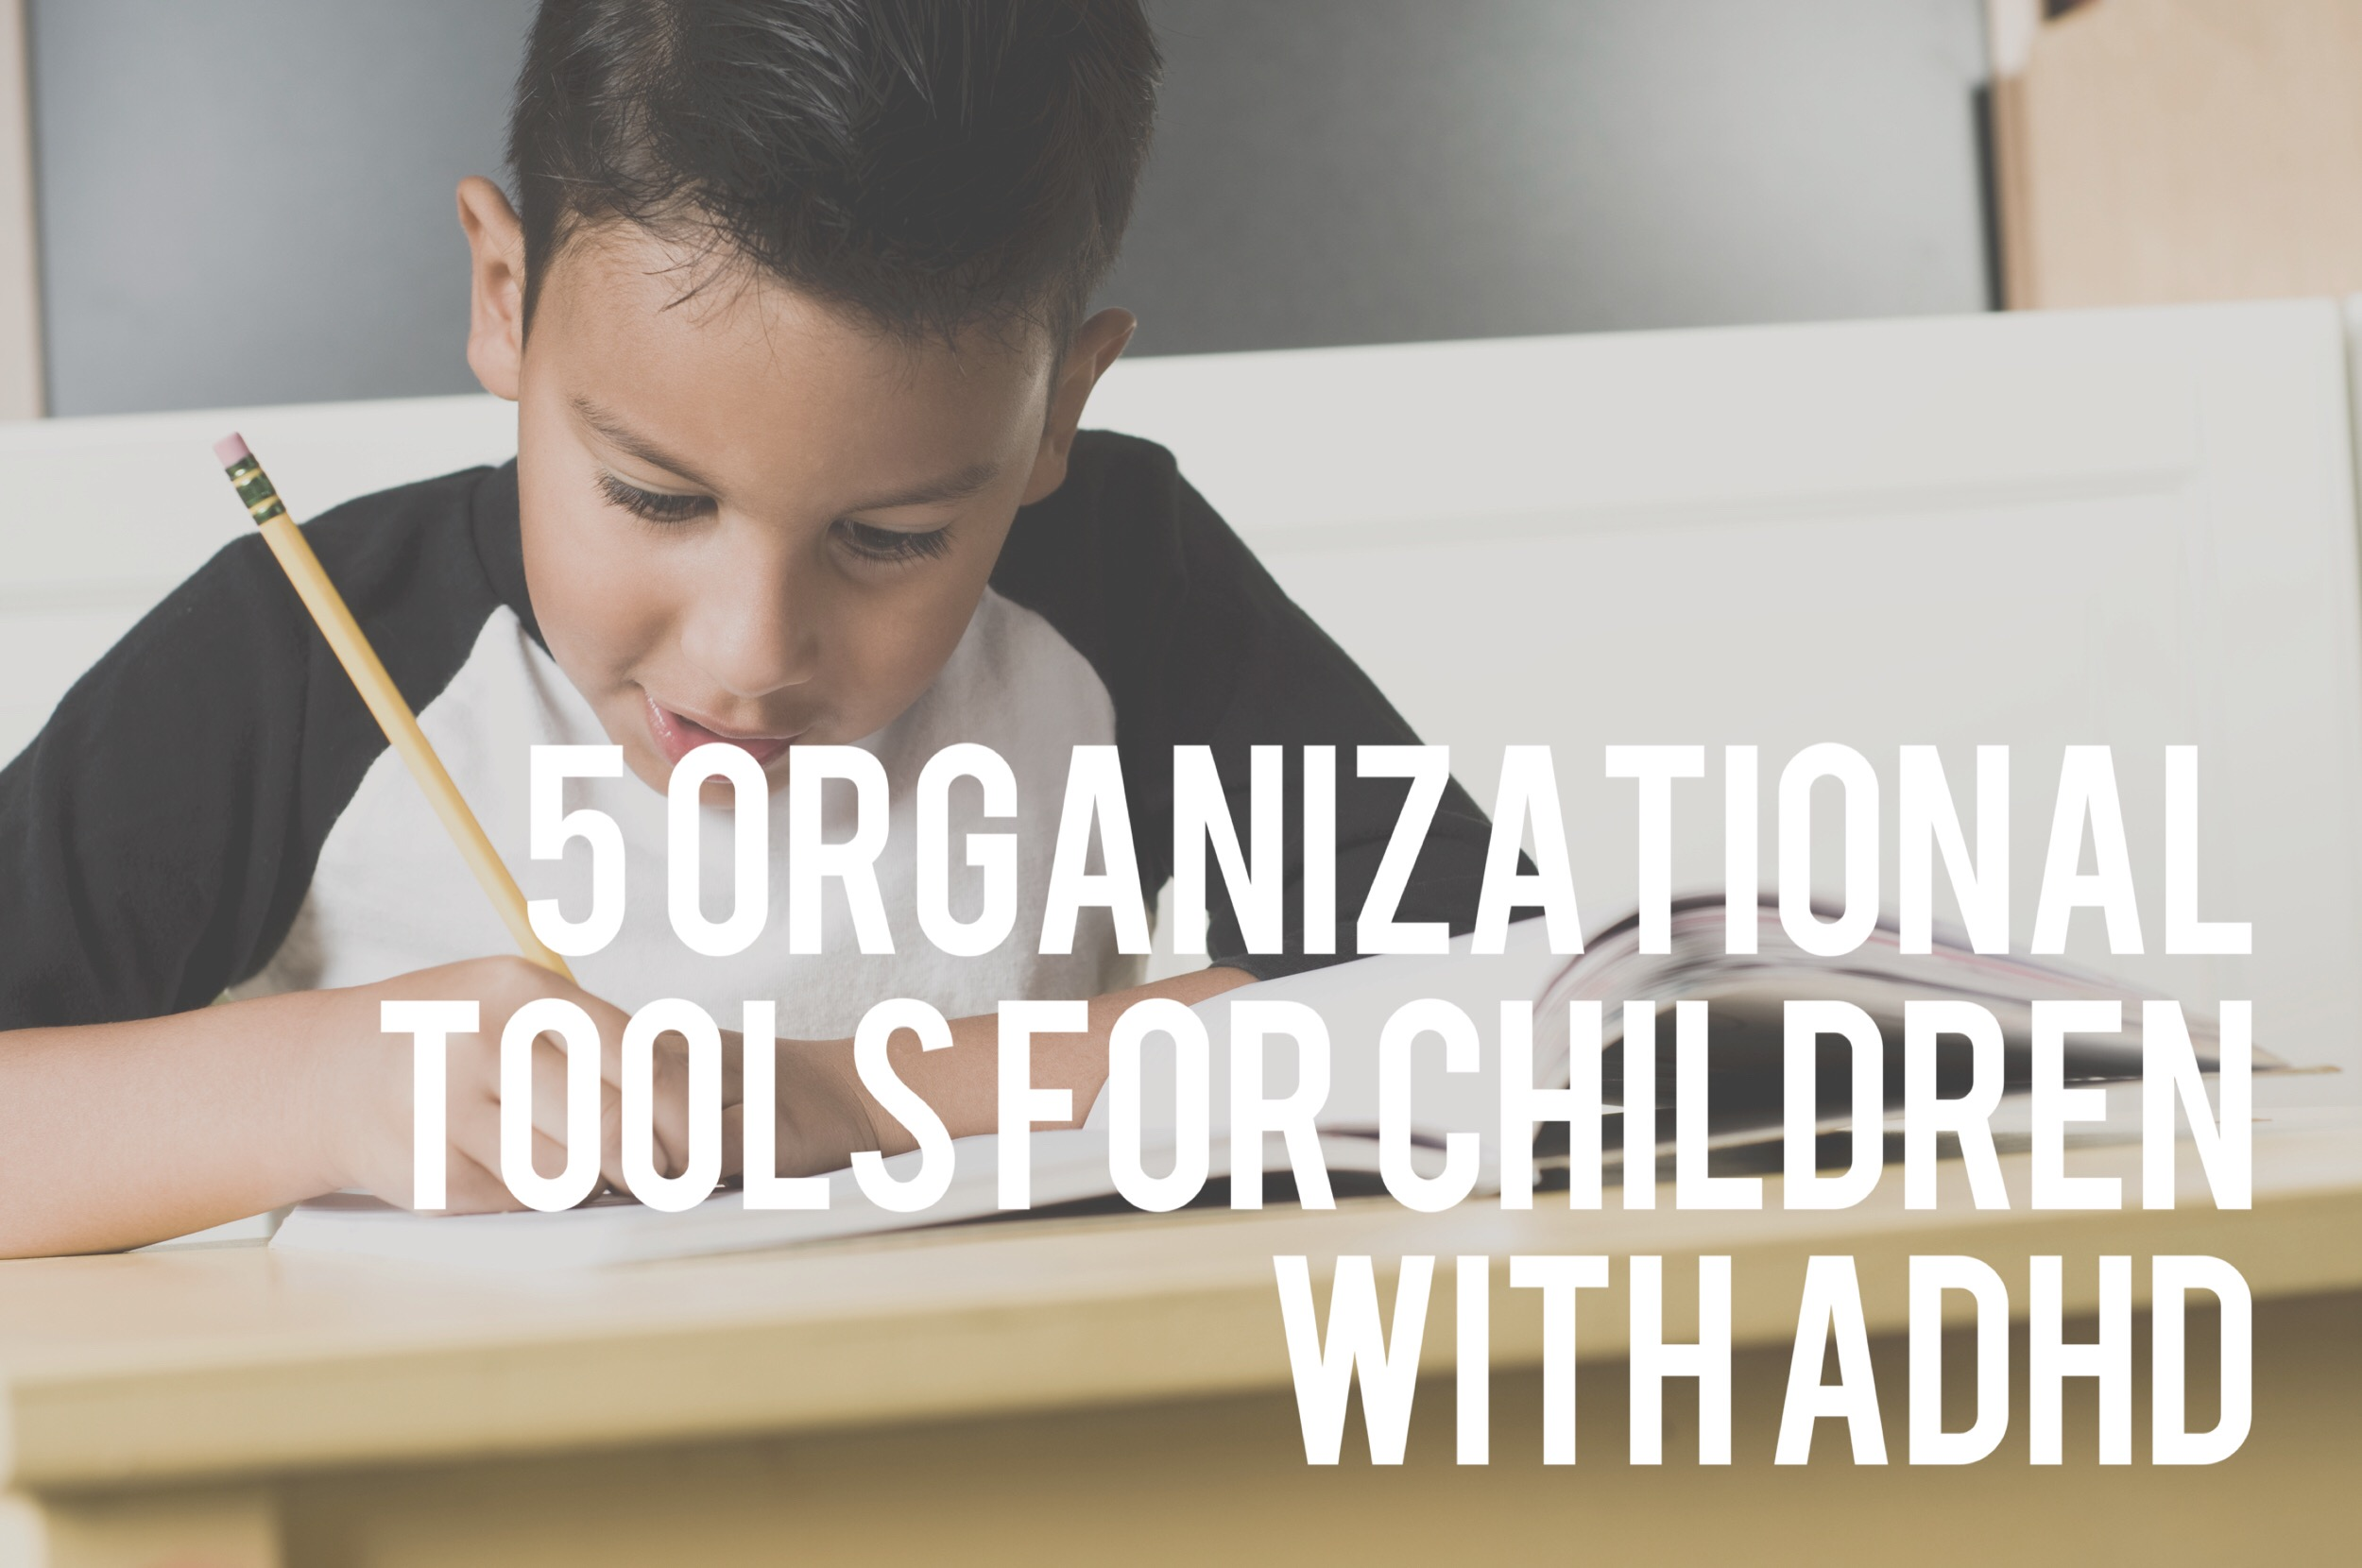 5 Organizational Tools for Children with ADHD